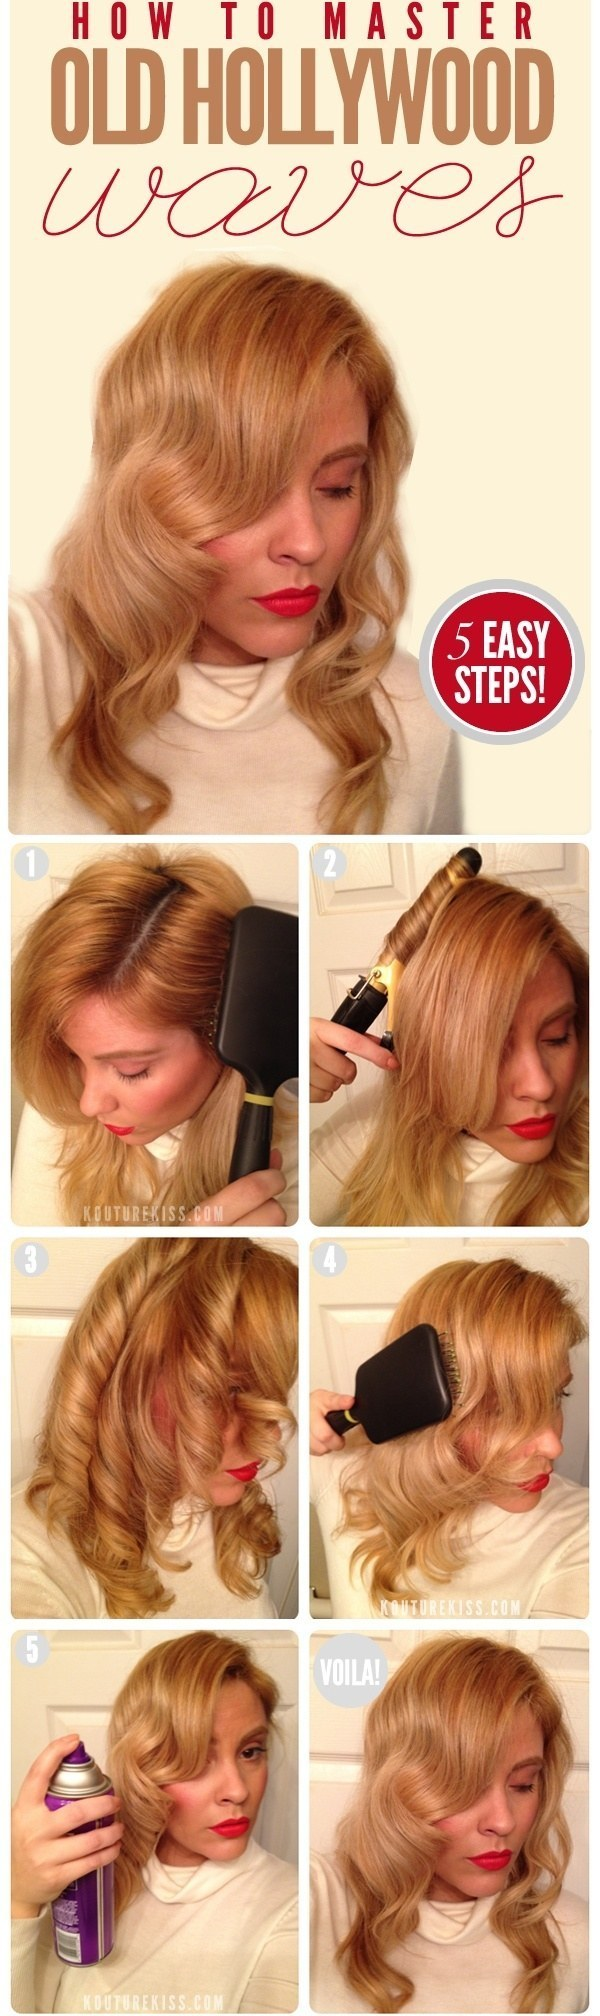 30 diy vintage hairstyle tutorials for short medium long hair lauren bacall39 solutioingenieria Choice Image